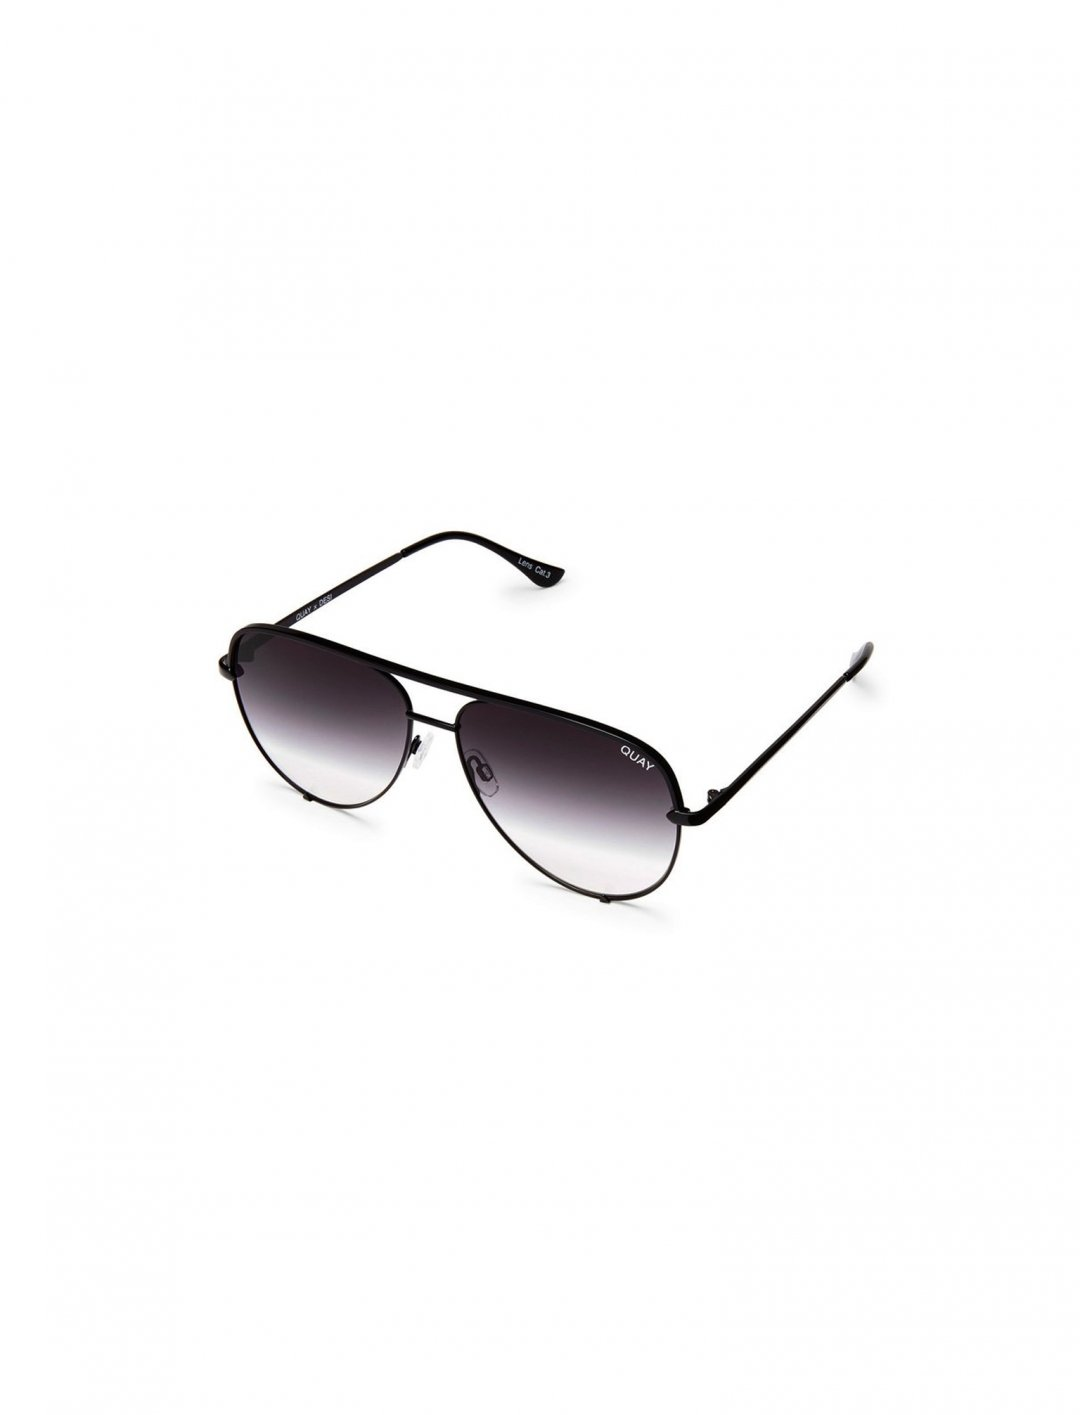 "Jennifer Lopez' Sunglasses {""id"":16,""product_section_id"":1,""name"":""Accessories"",""order"":15} QUAY Australia"